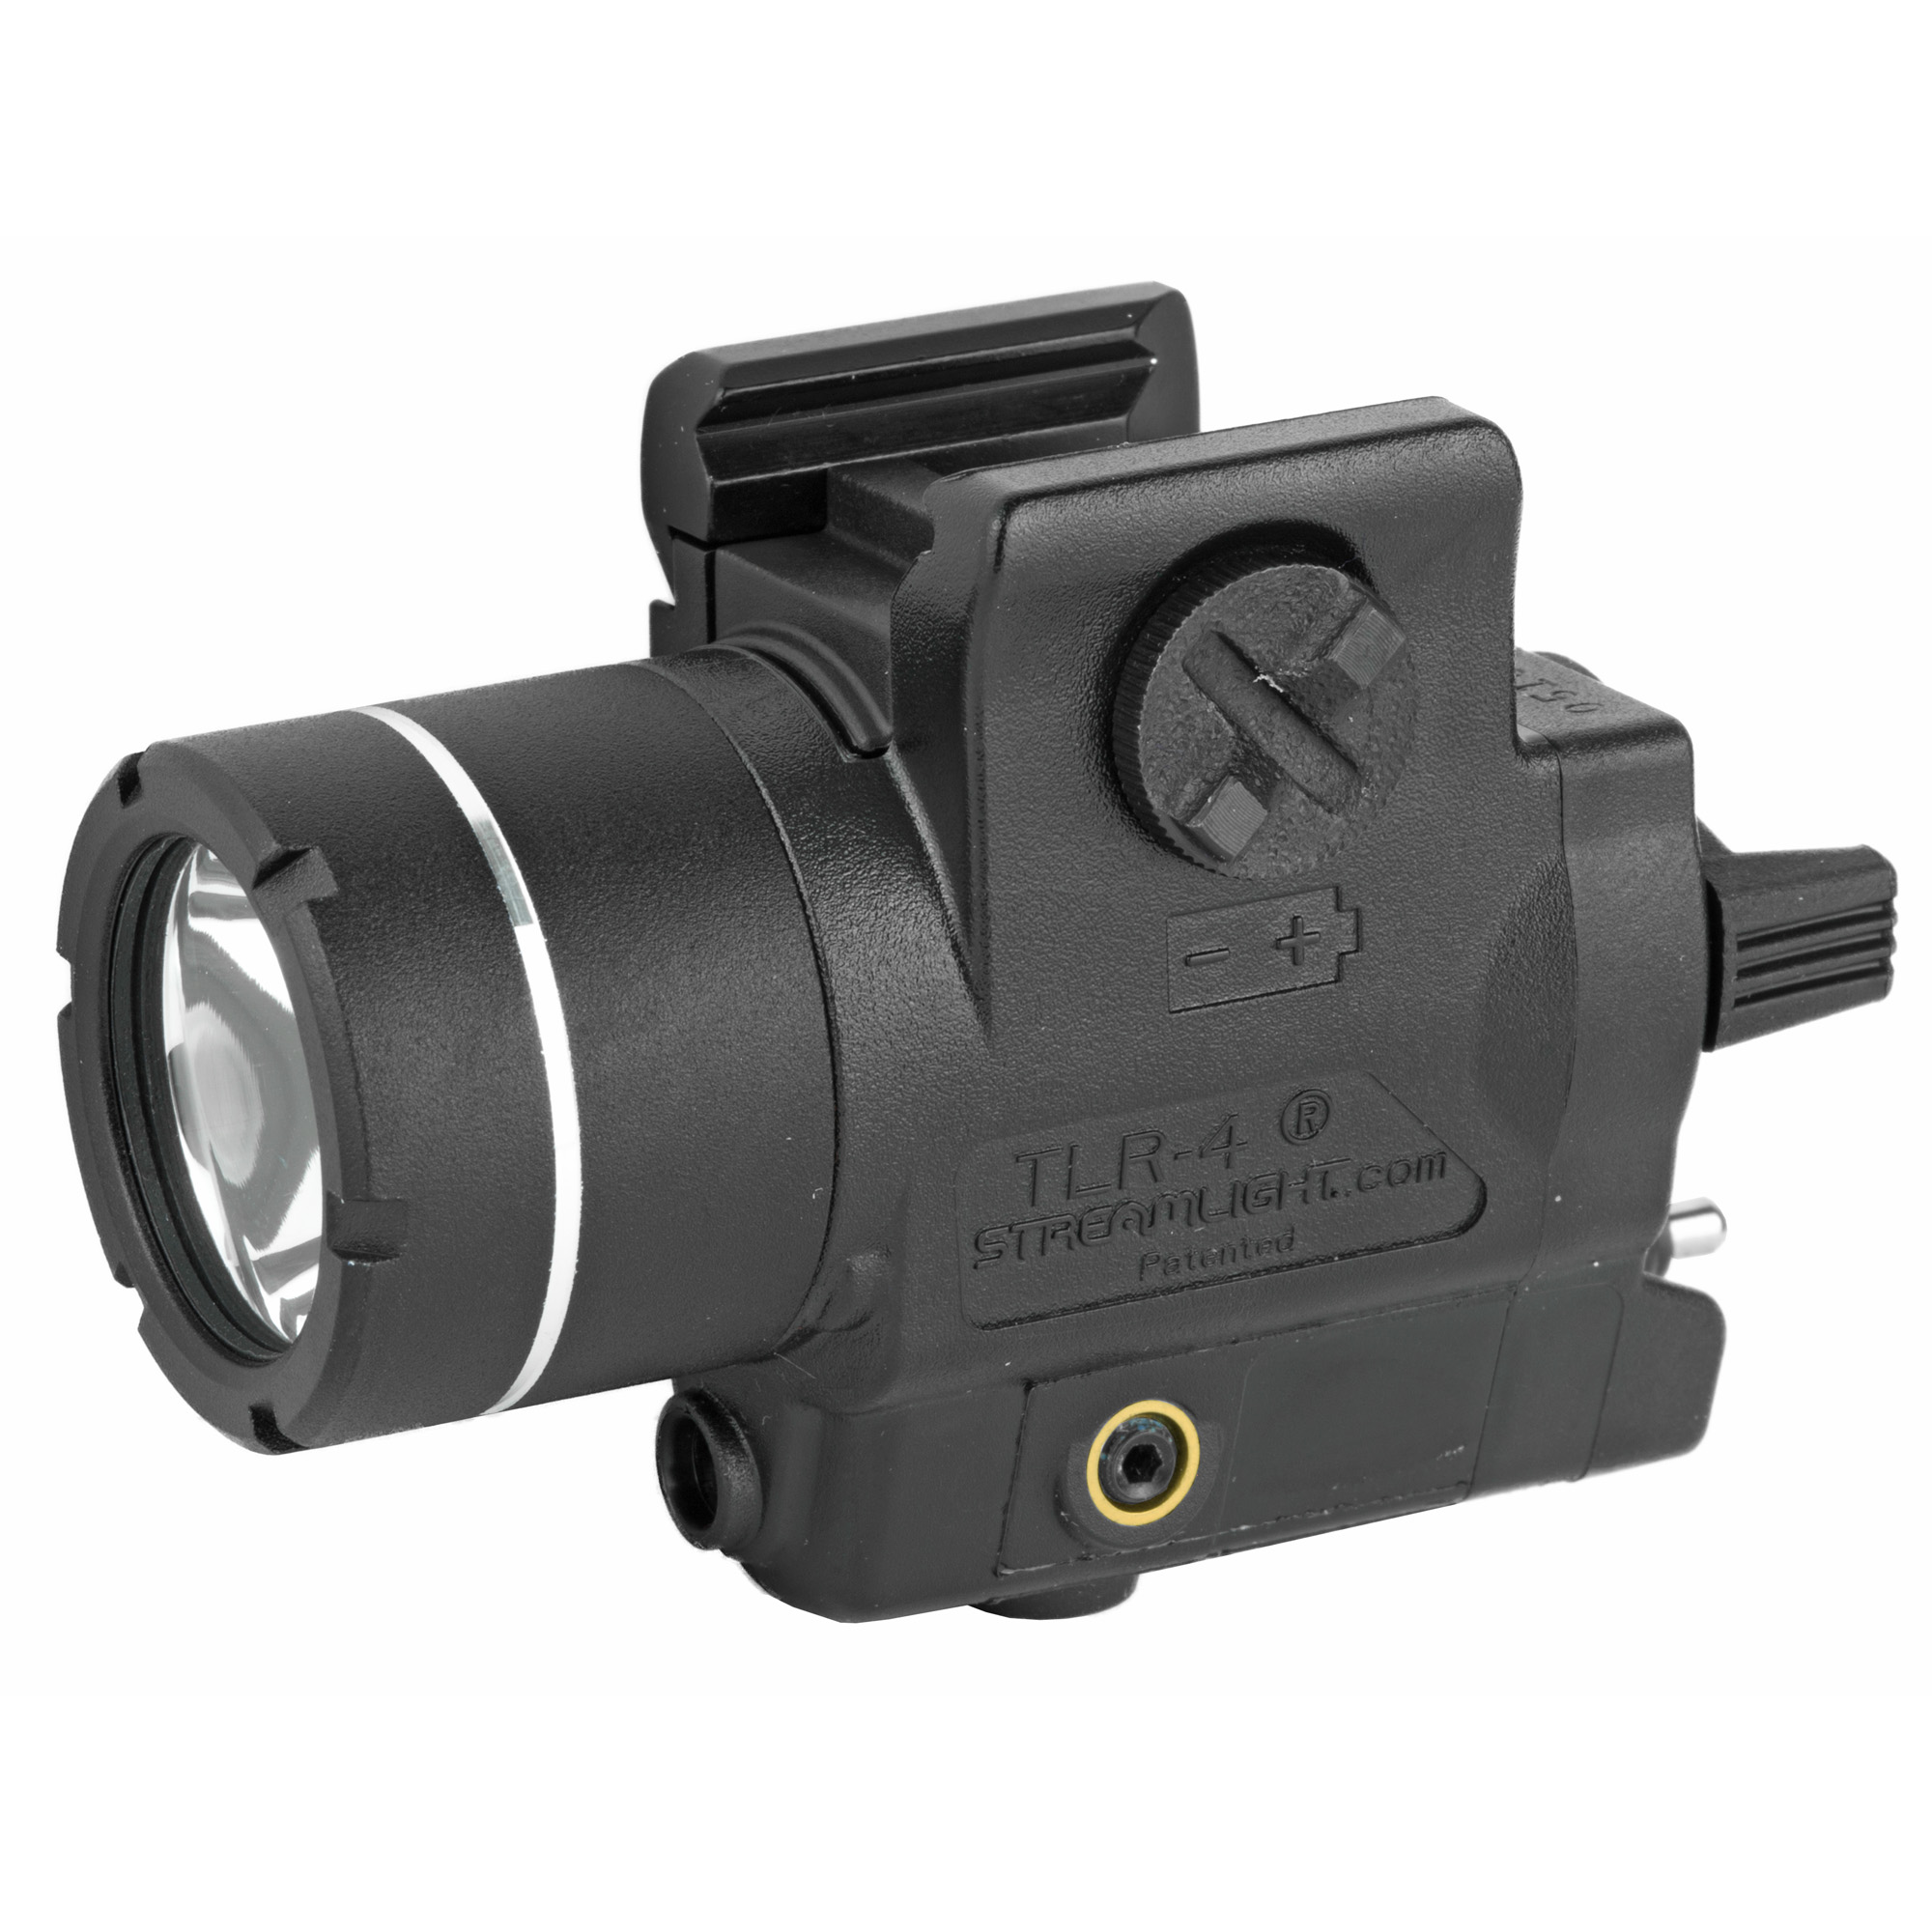 Lightweight polymer rail-mounted light with laser designed to fit compact and sub-compact handguns and most full-sized handguns with rails. TLR-4 is now shining brighter at 170 lumens!